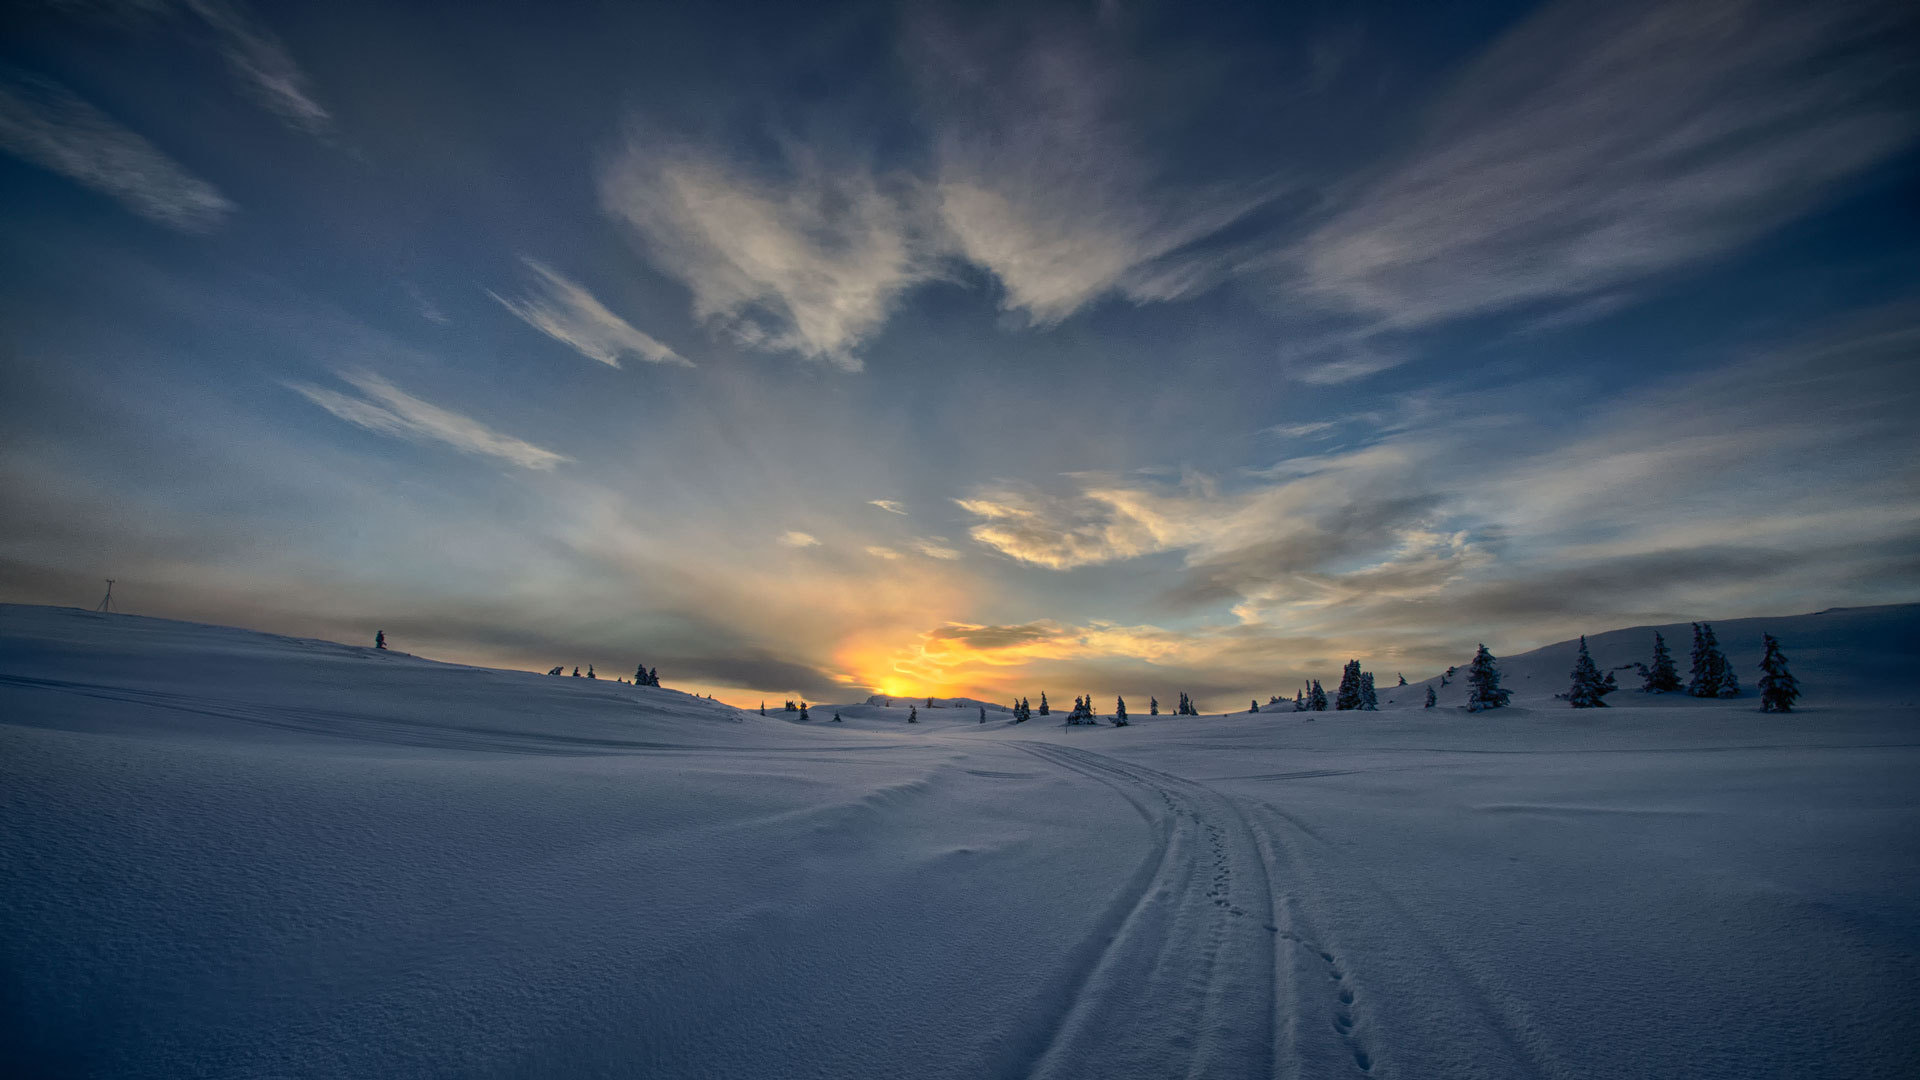 Photograph Untitled by Anders Aasheim on 500px